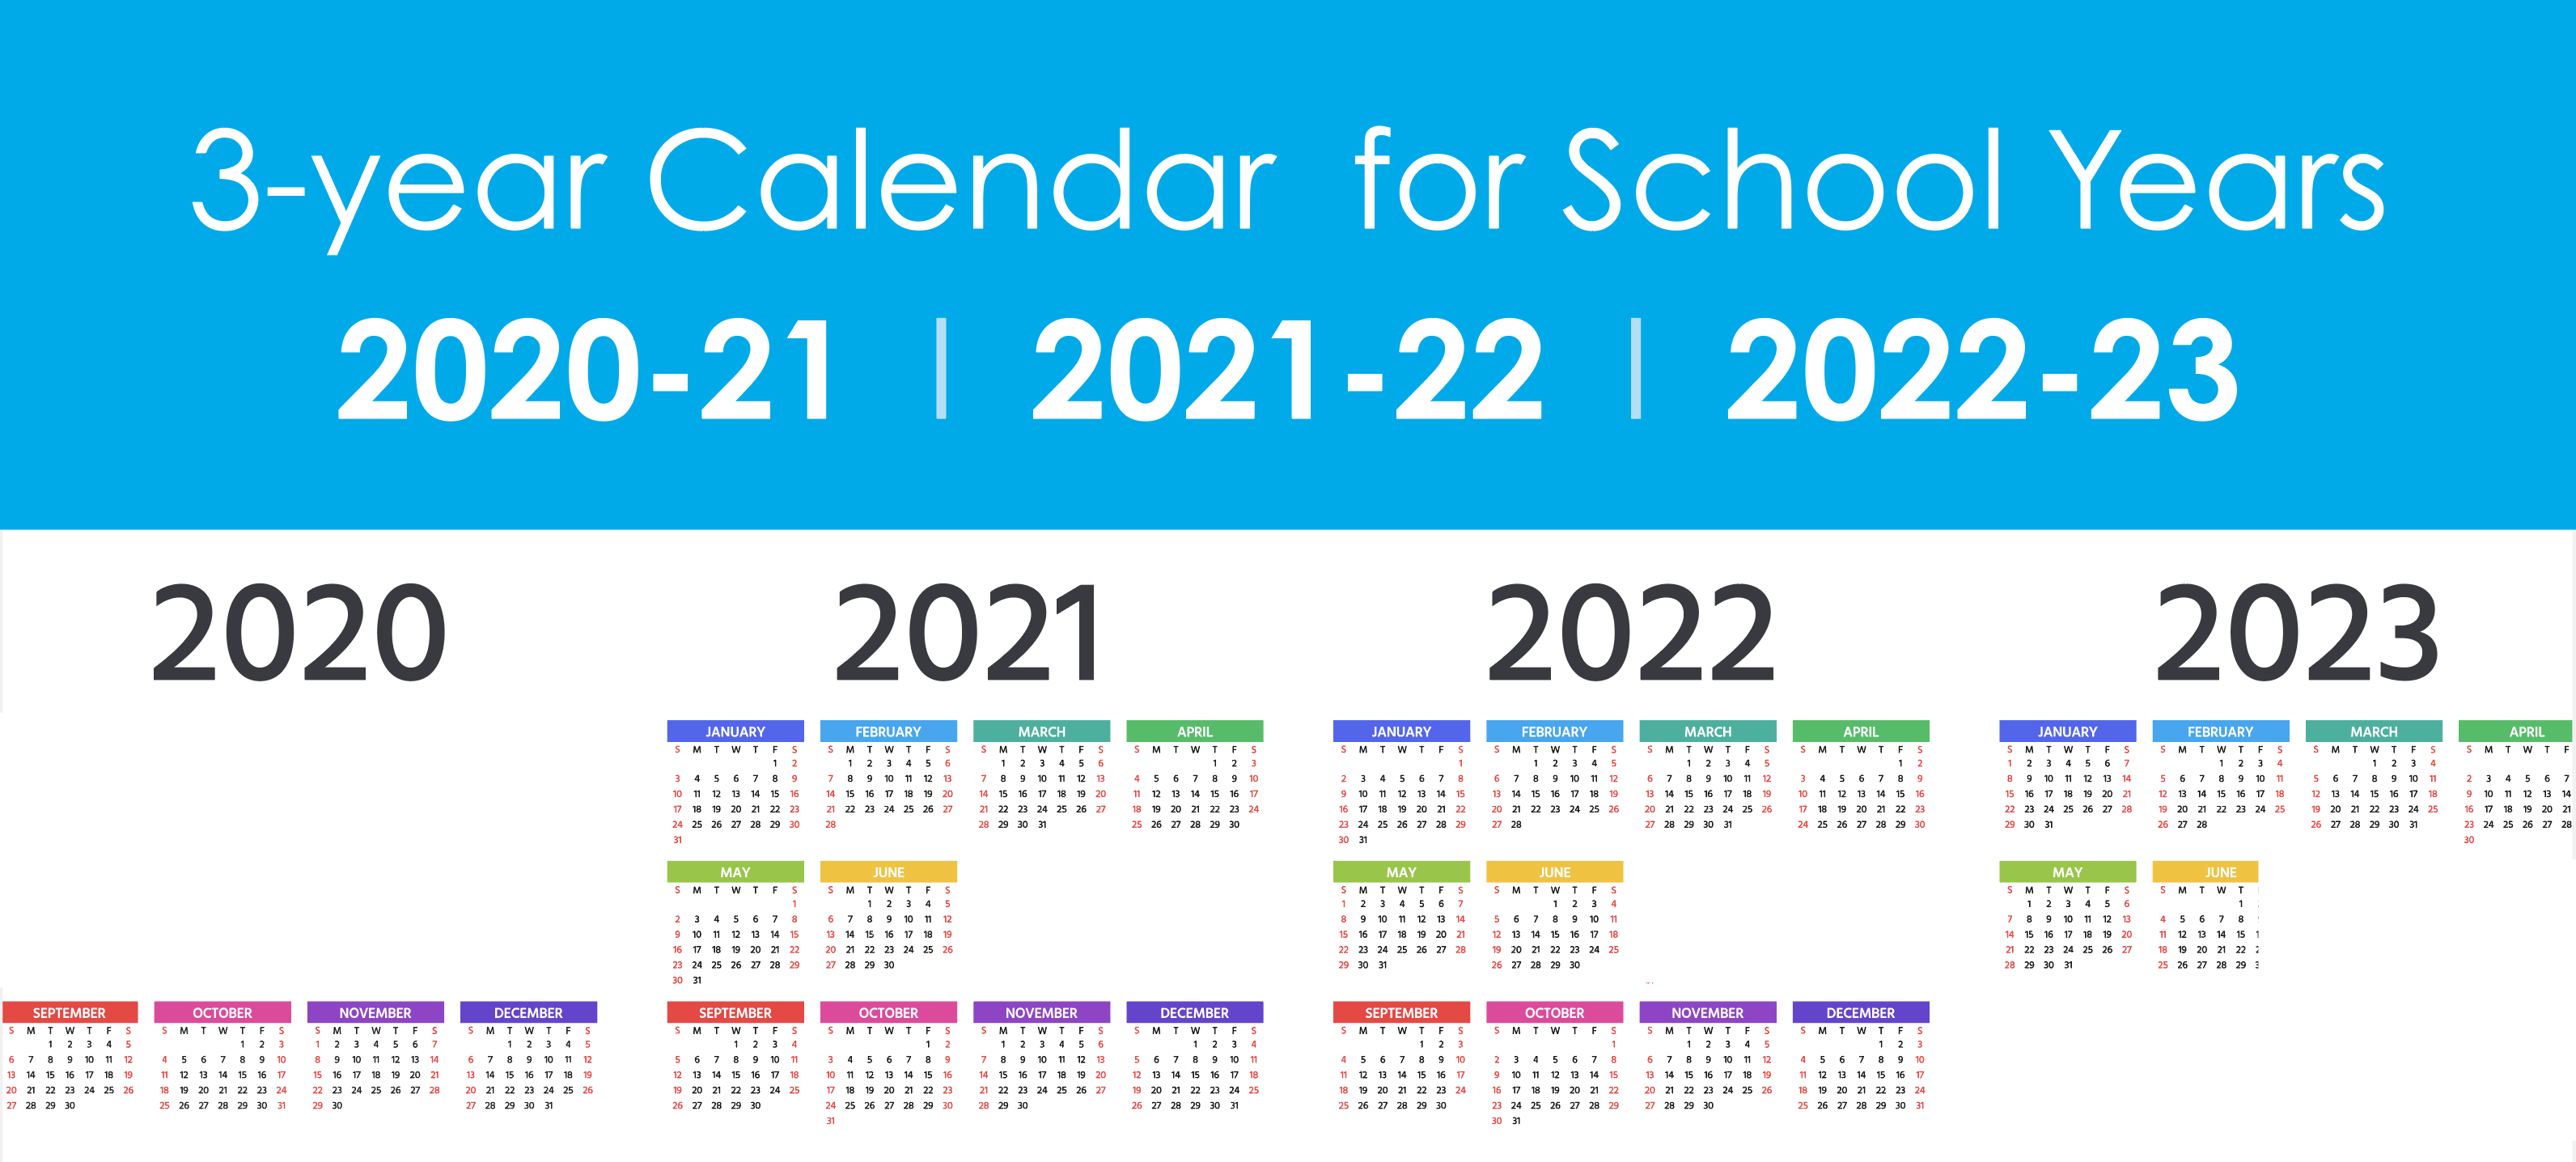 Sfu Calendar 2021 Opportunity for Feedback on District's Proposed 3 year Calendar